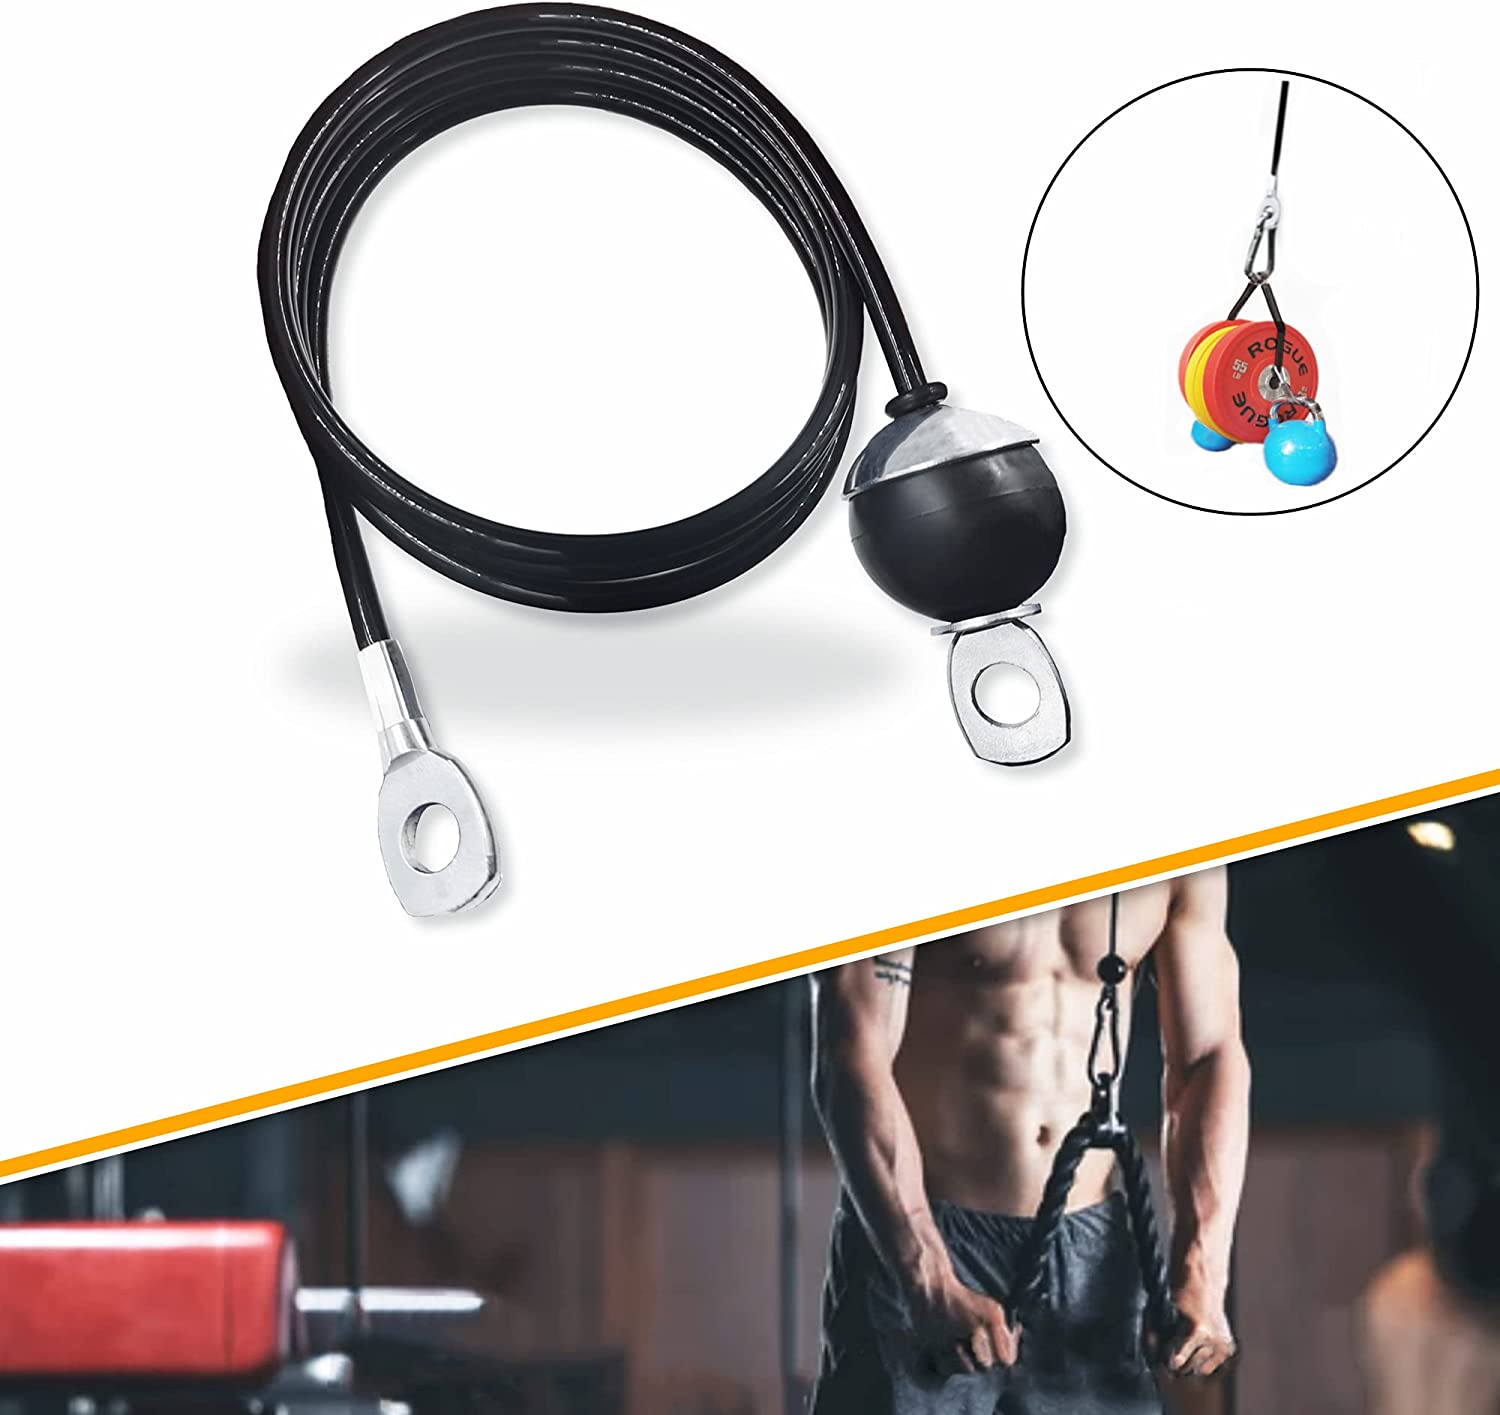 J Bryant Fitness Thick 6mm Loading 1100Lbs Heavy Duty Pulley Cable Replacement Fixed Length Steel Wire Rope Cable for Home Gym Cable Machine Workout Accessories